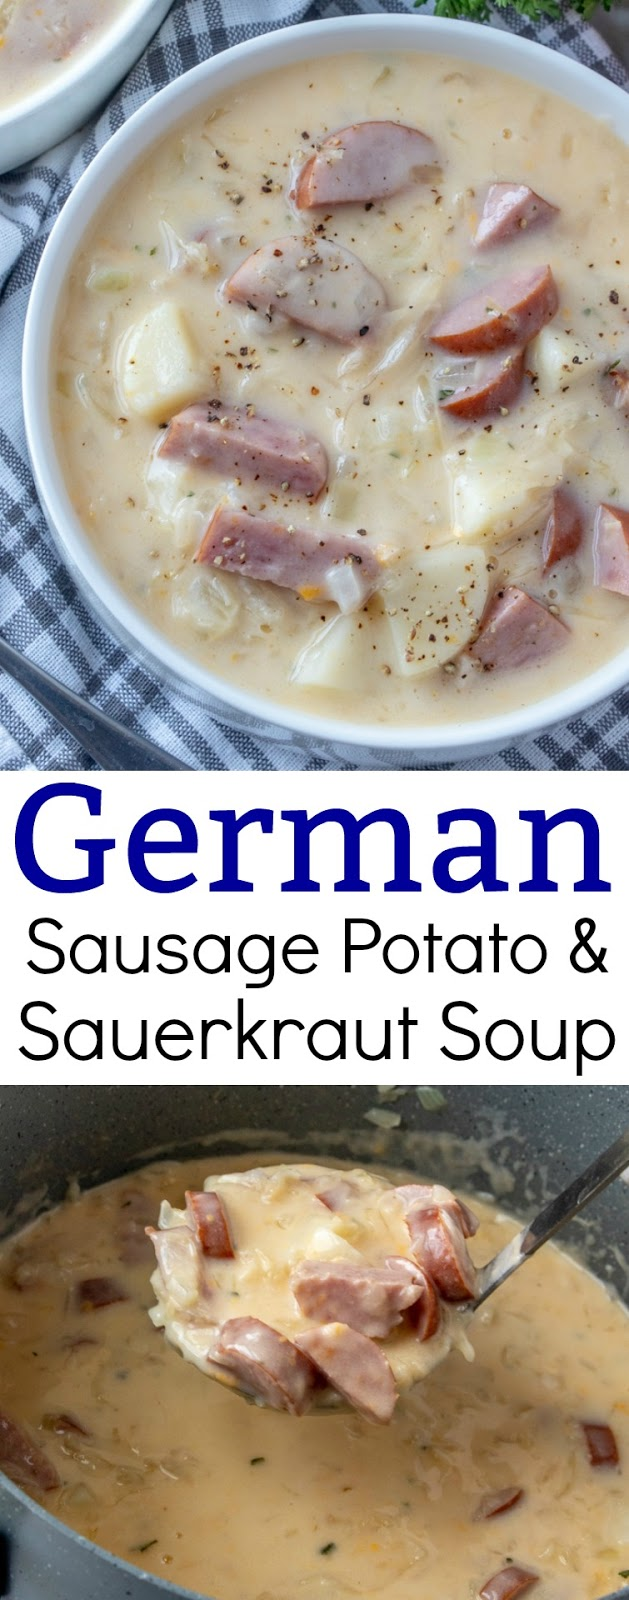 Delicious and easy 30 minute meal! Perfect for weeknight lunch or dinner and the sauerkraut adds a surprising touch of flavor in this German inspired soup. The kielbasa and potatoes make it hearty and comforting!